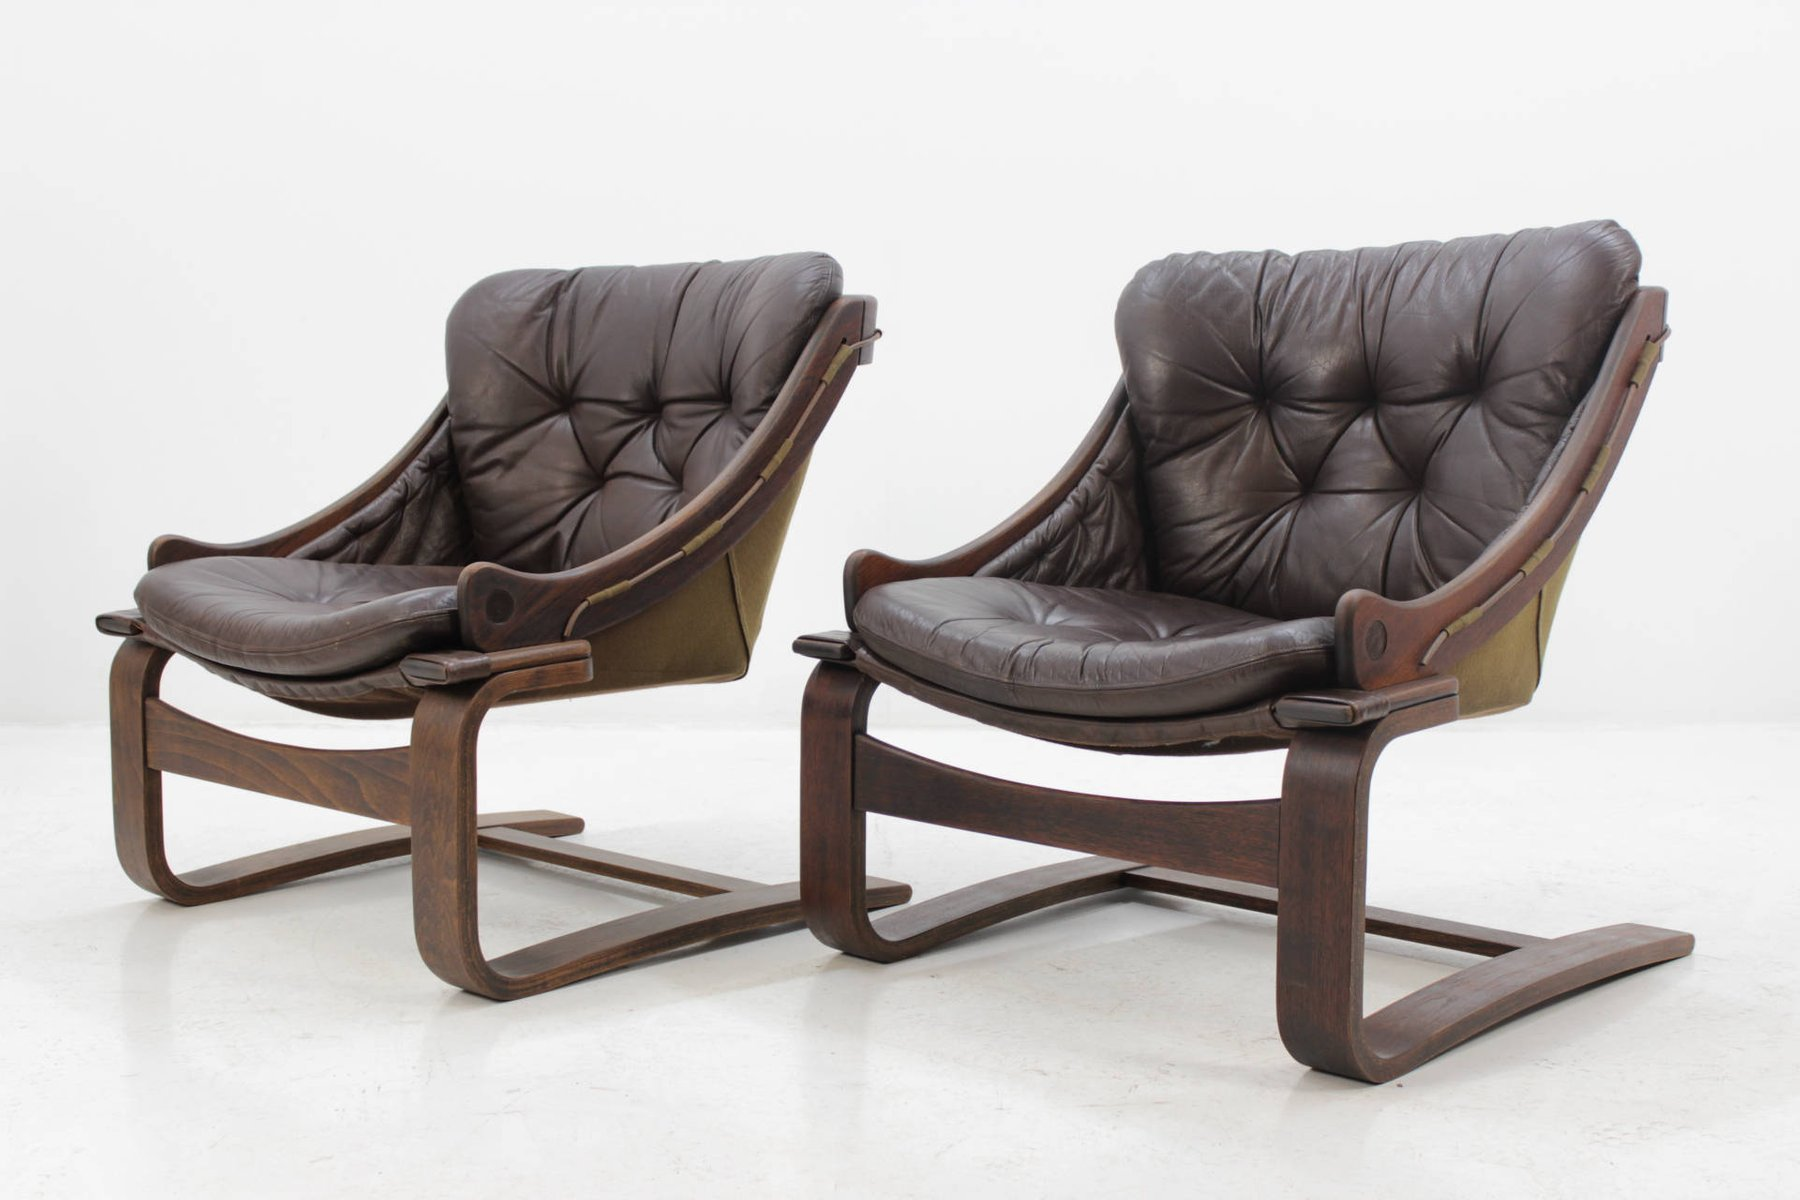 scandinavian bentwood leather lounge chair by ake fribytter for nelo m bel 1970s for sale at pamono. Black Bedroom Furniture Sets. Home Design Ideas